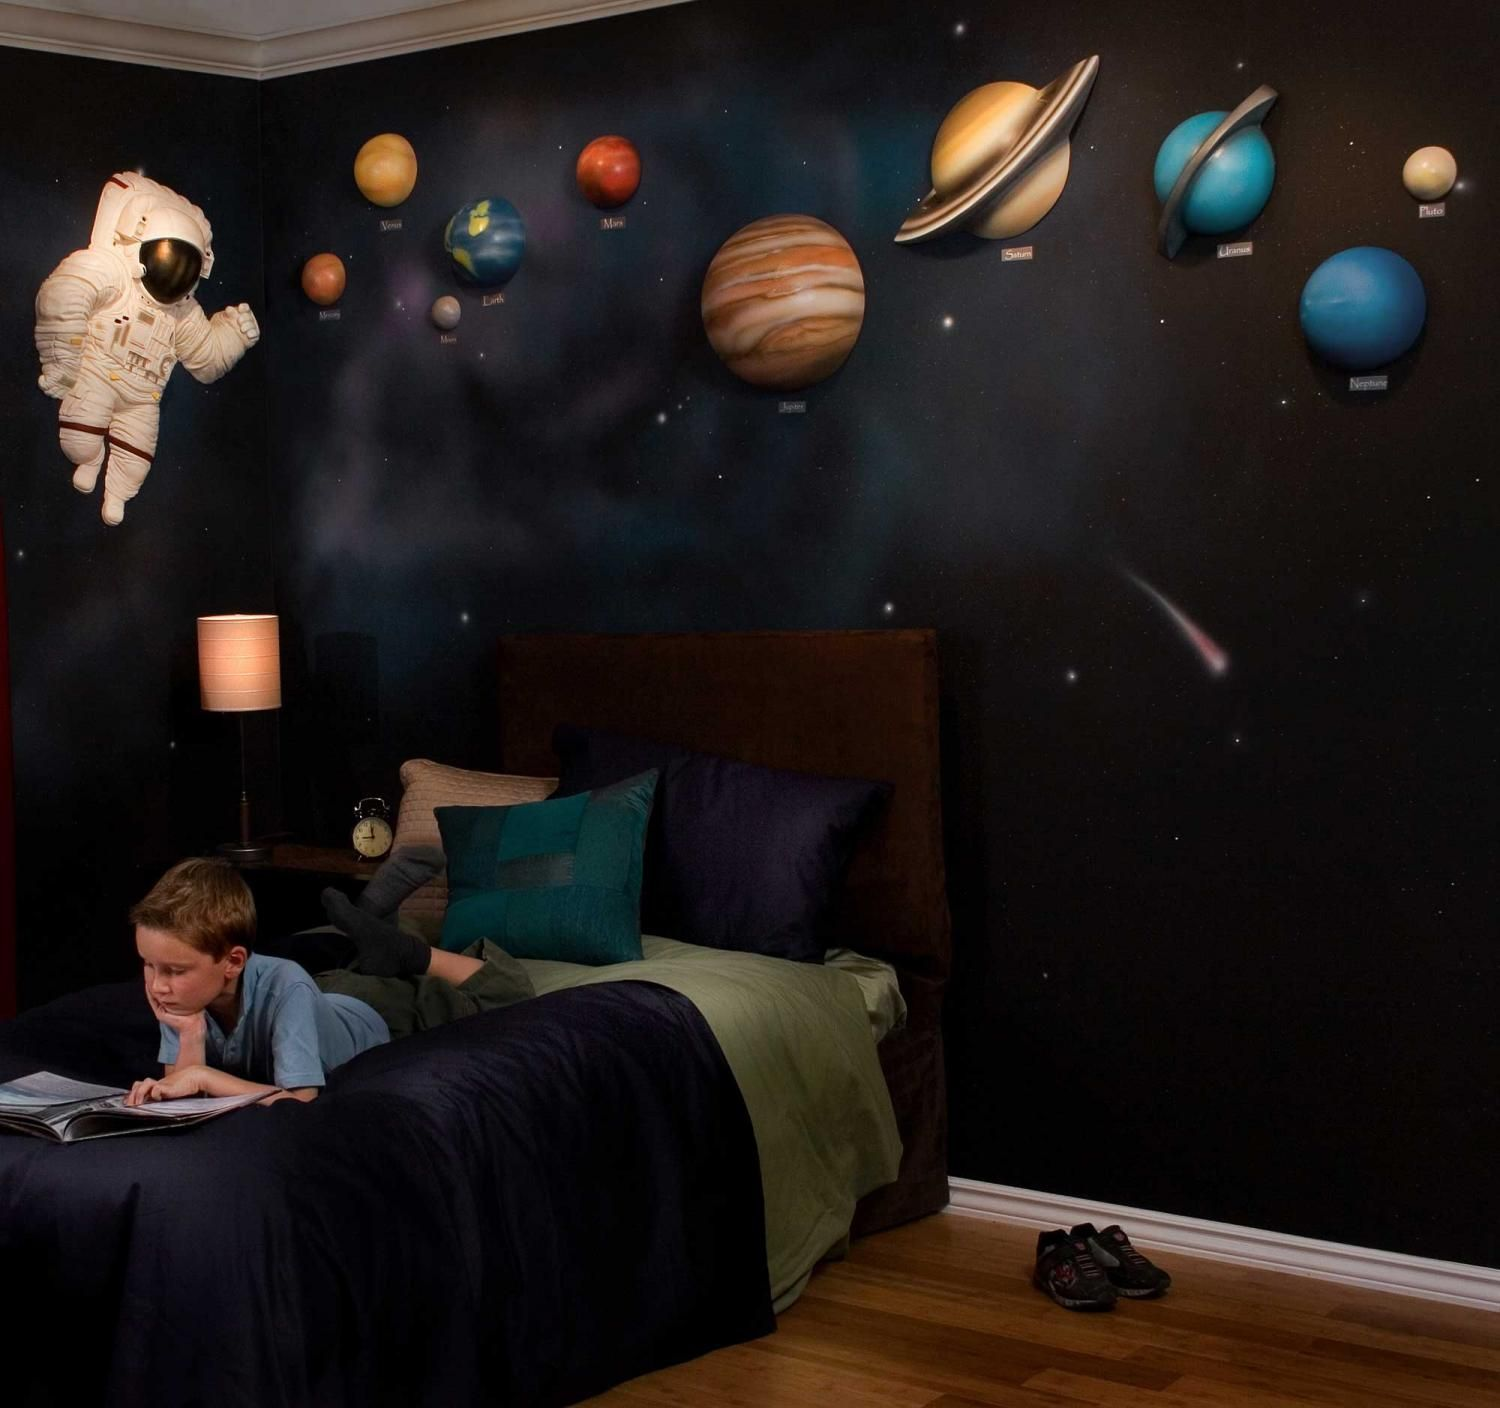 Outer Space Room Decor For Teen: Solar System With Space Astronaut 3D Wall Art Decor By